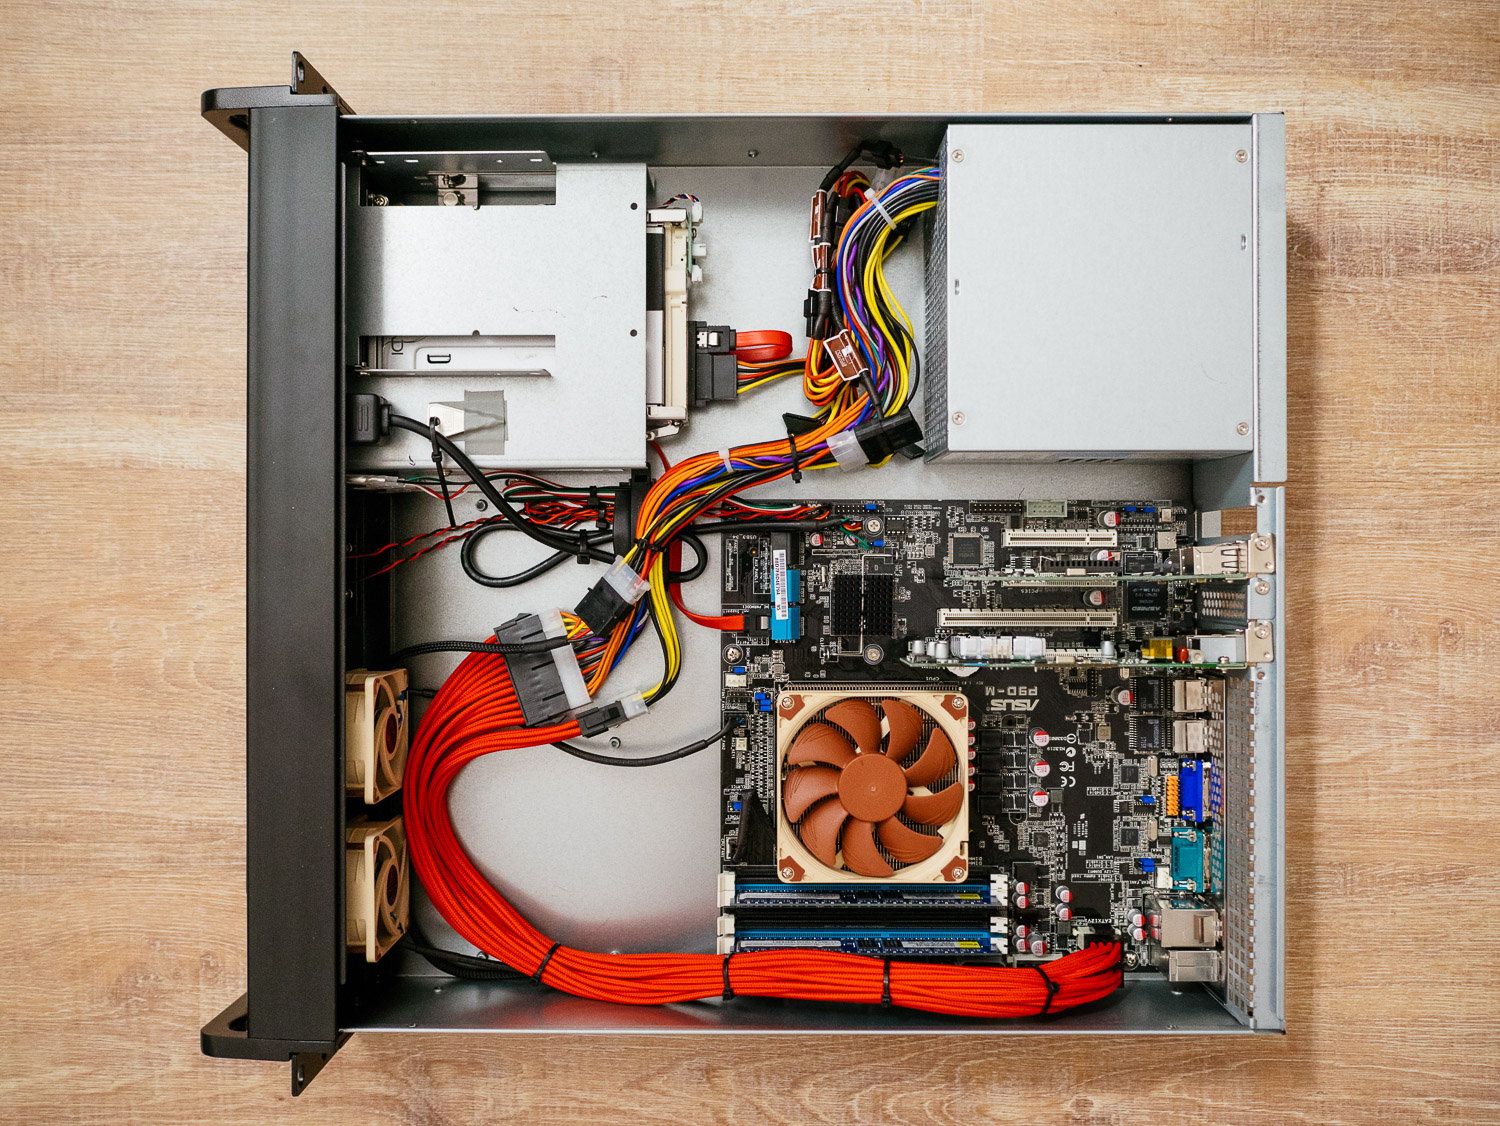 Home server-router build - Projects & Events - Level1Techs Forums